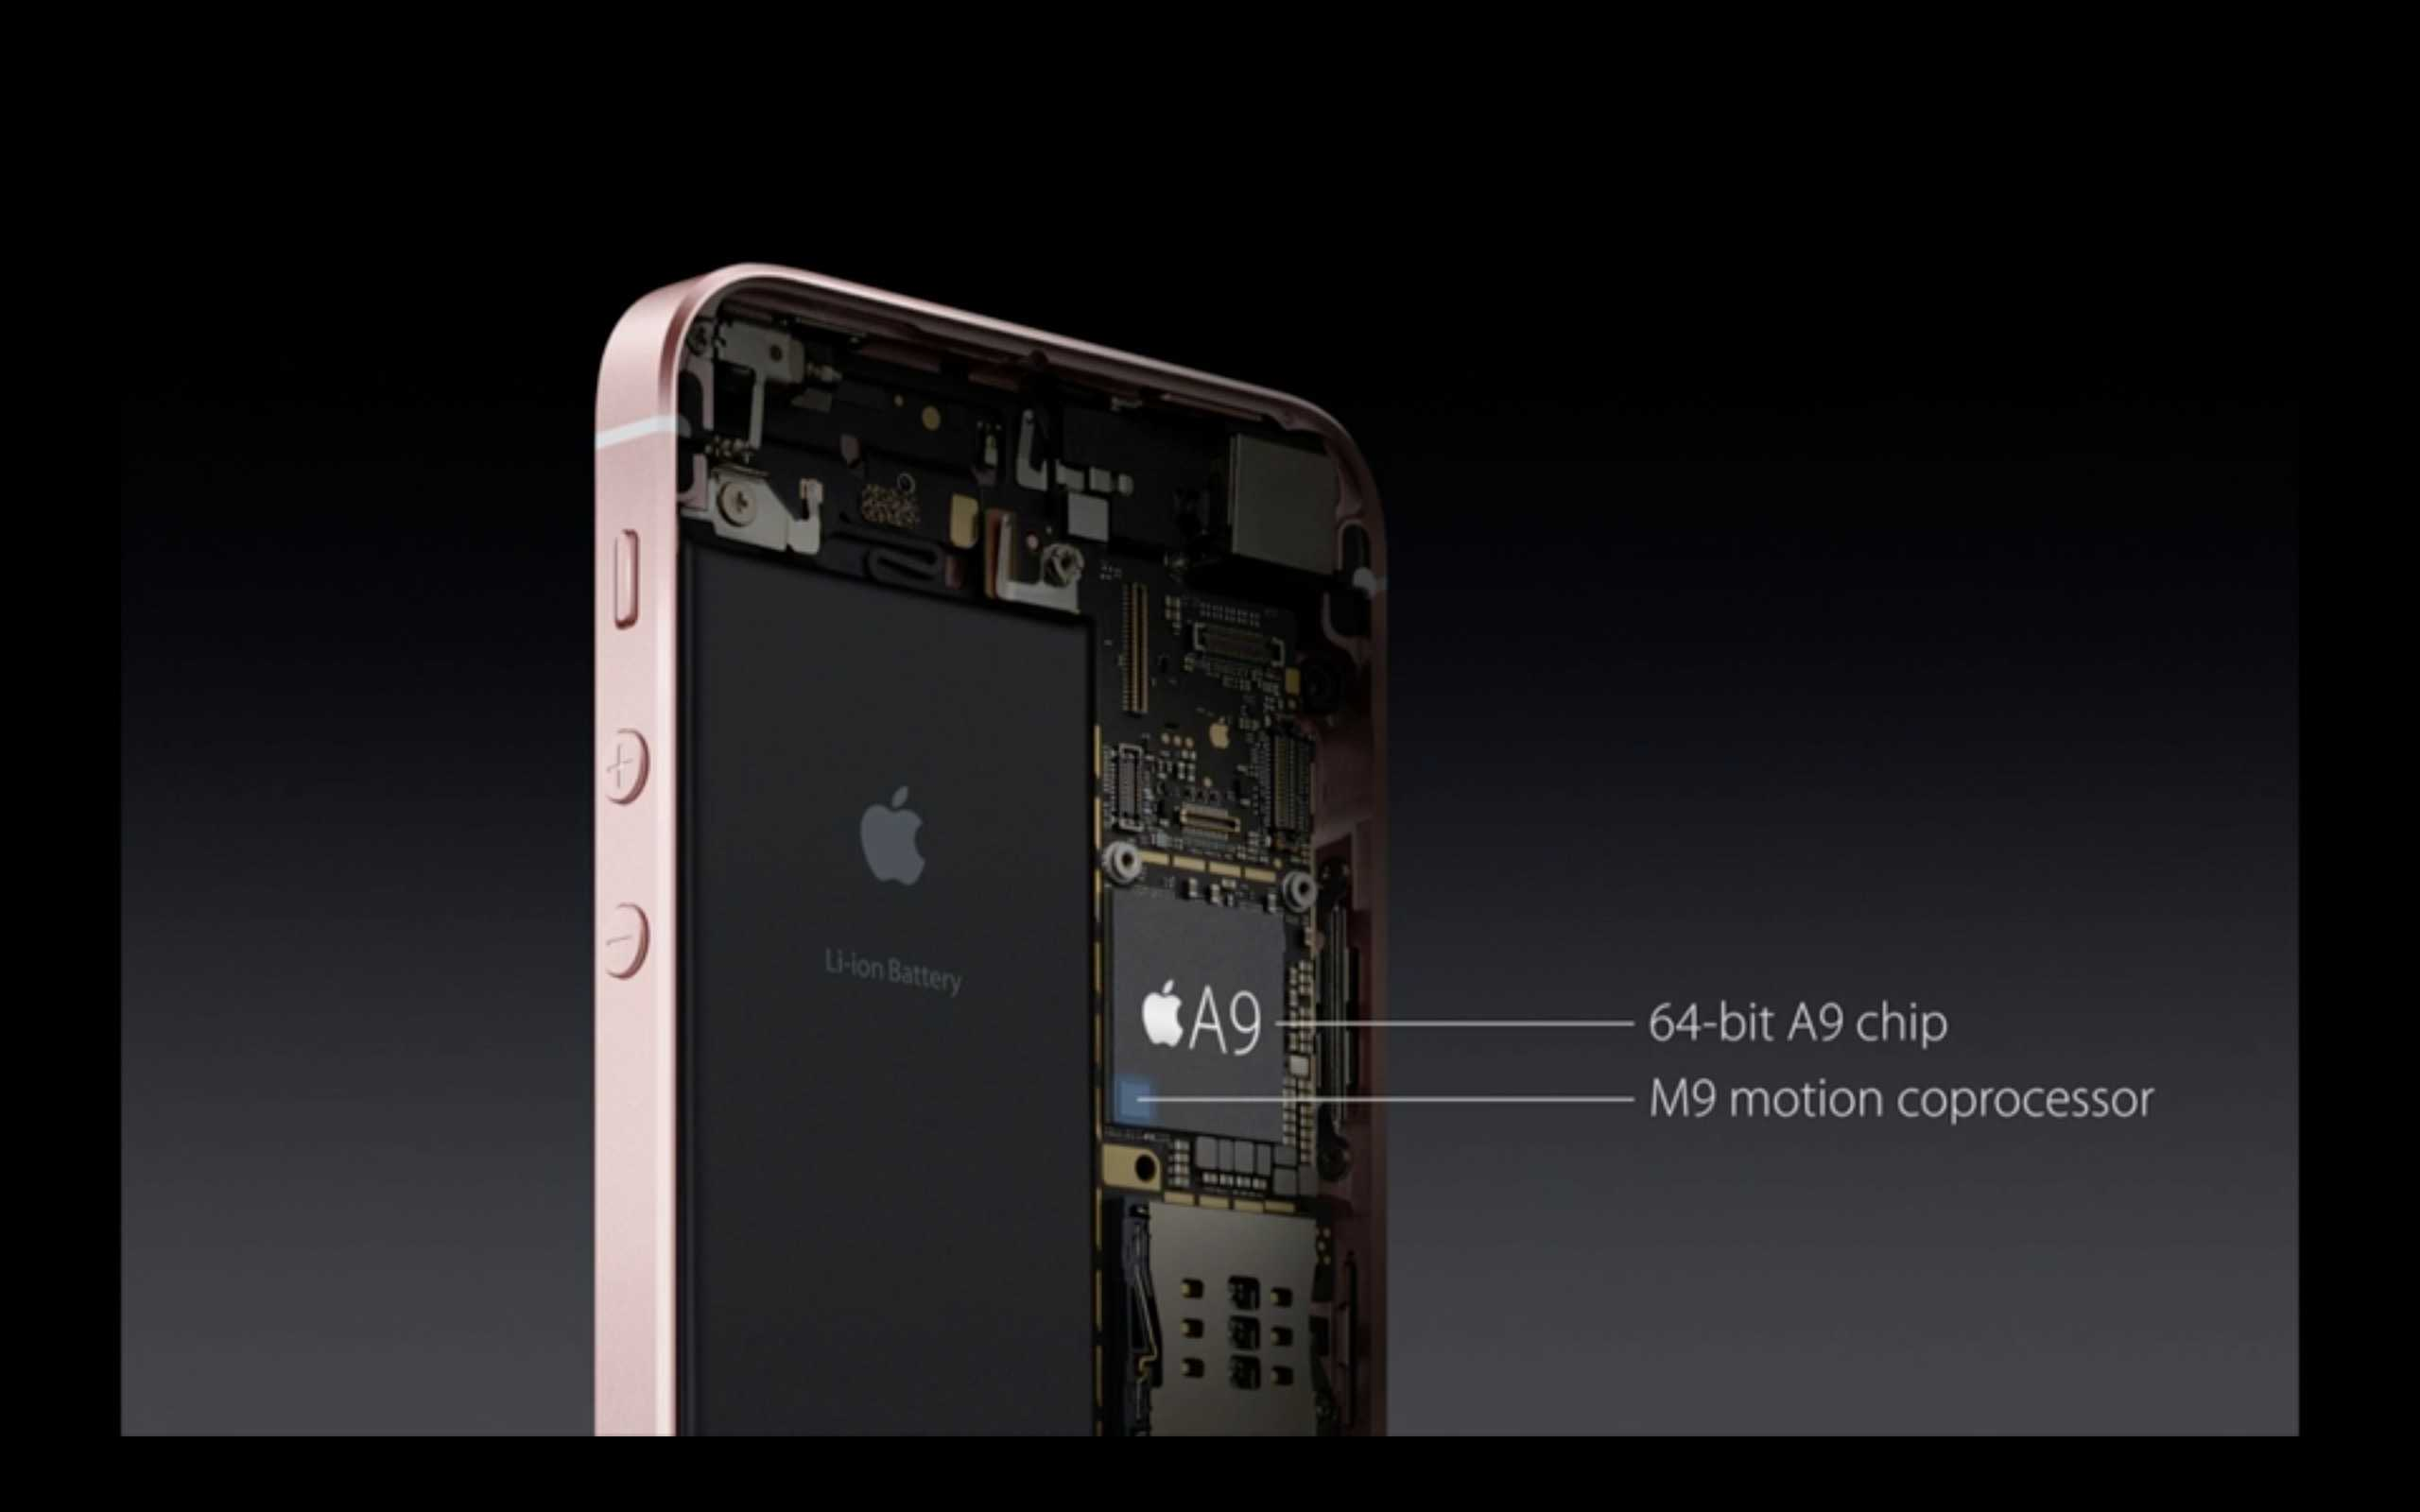 Hardware iPhone SE